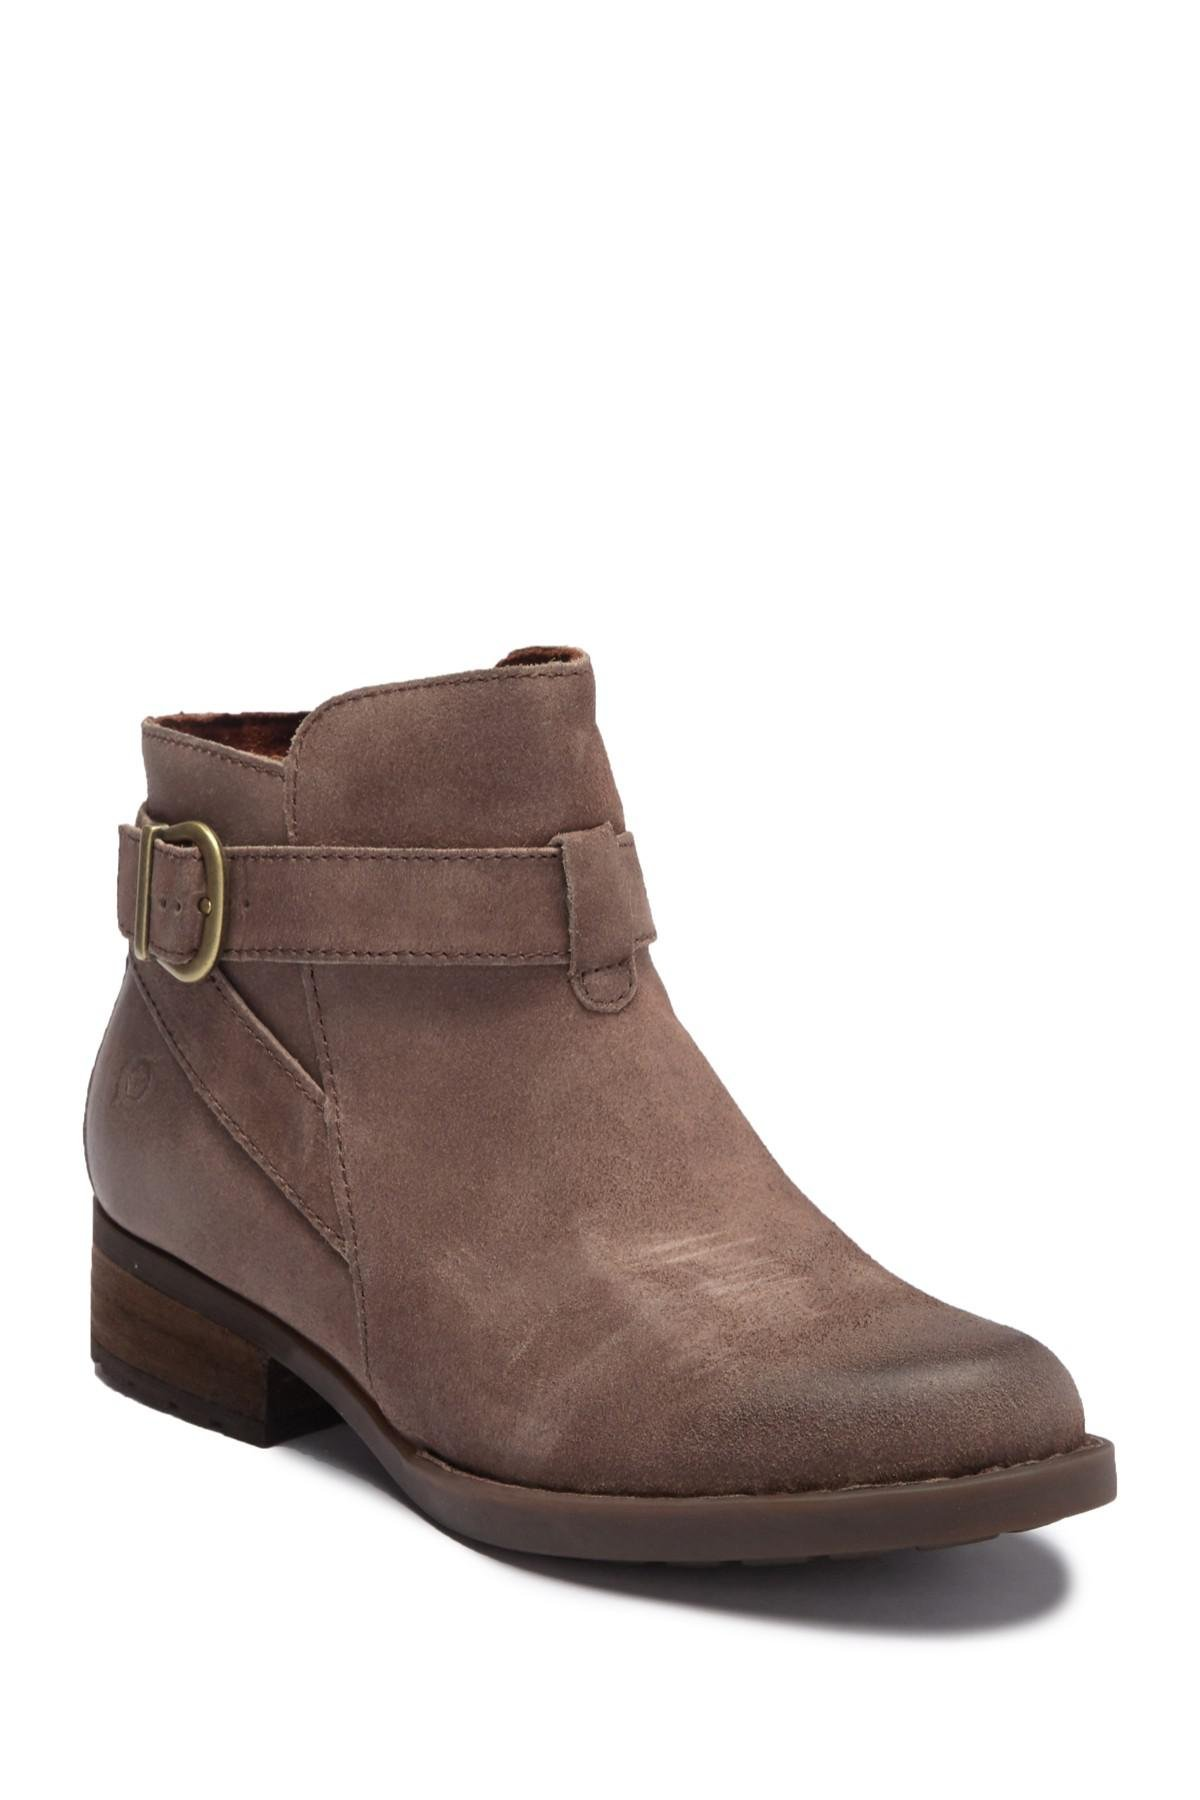 f90becaa618 Lyst - Born Jorgette Leather Buckle Strap Bootie in Brown